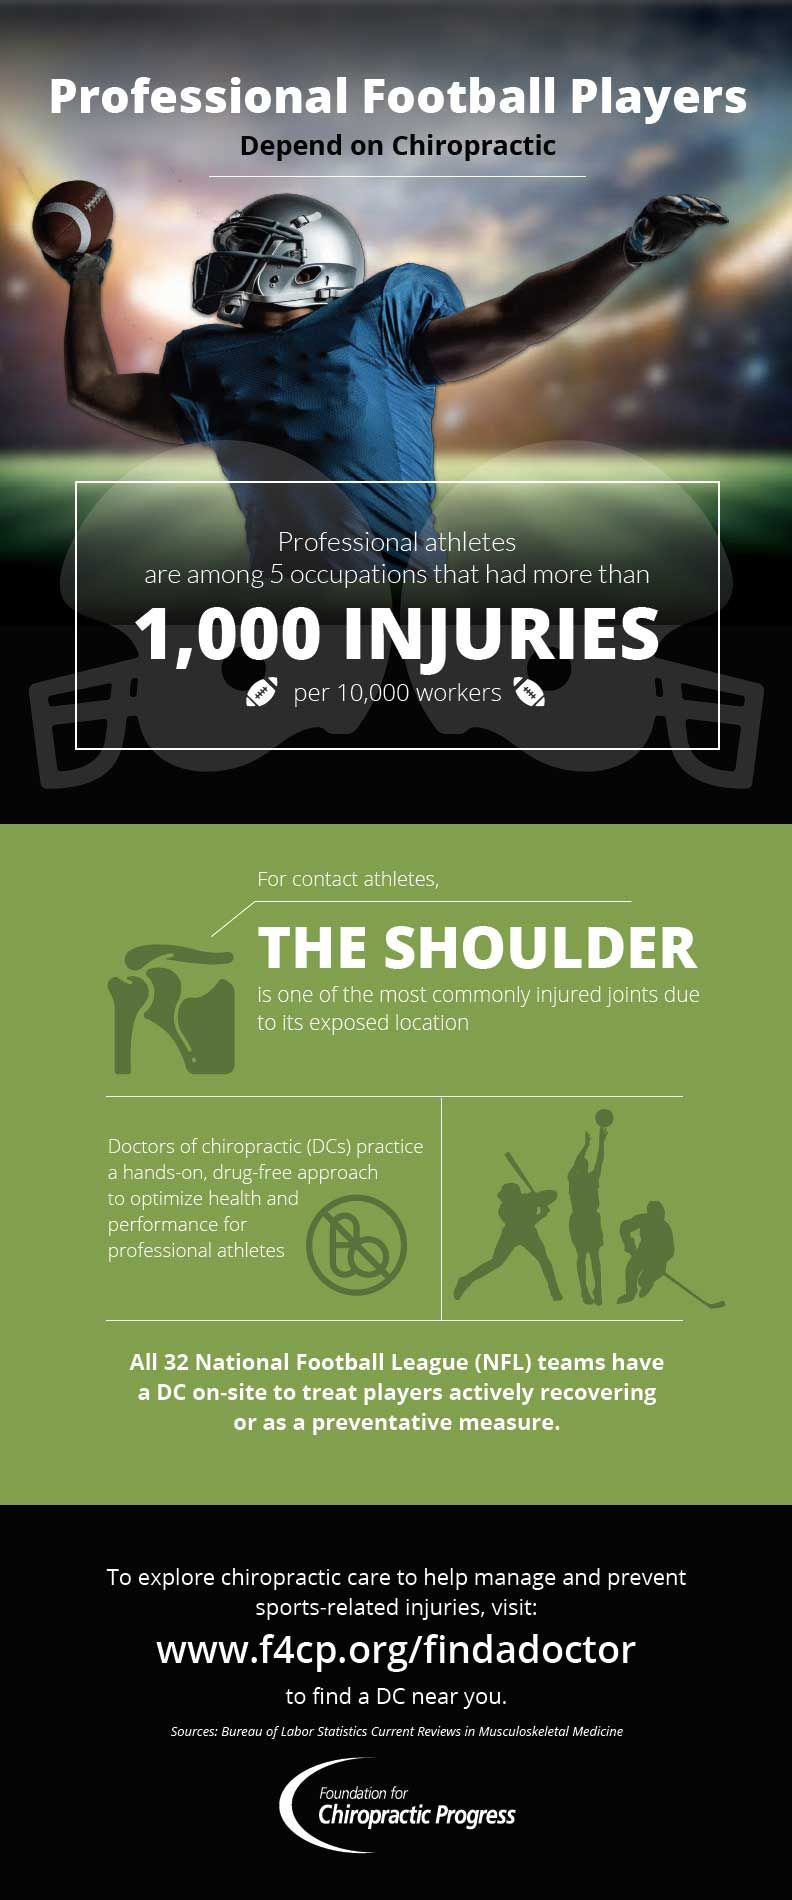 Professional Football Players Depend On Chiropractic Care Chiropractic Care Doctor Of Chiropractic Chiropractic